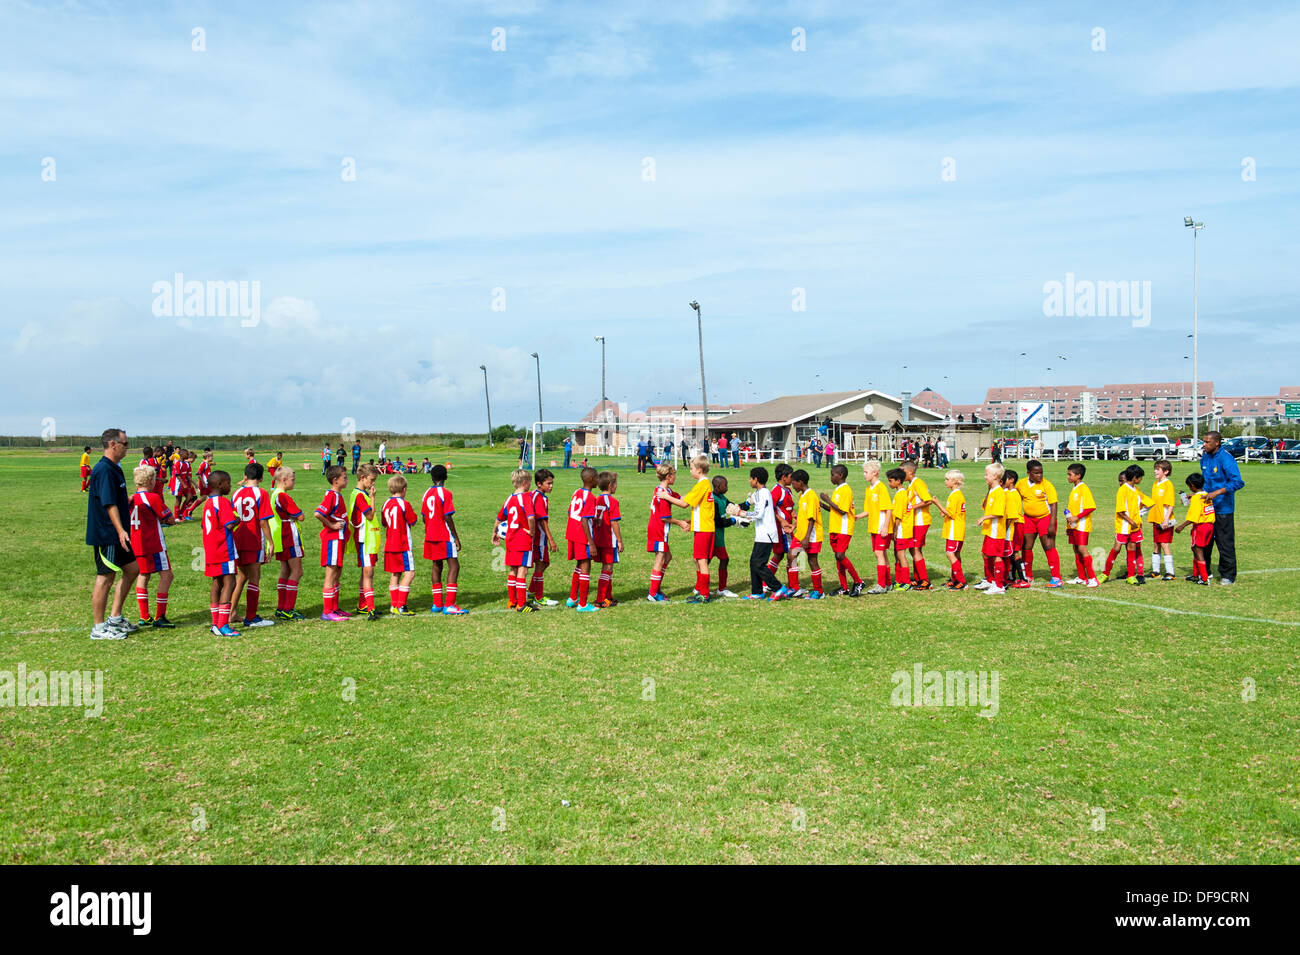 Junior football teams greeting each other before the match, Cape Town, South Africa - Stock Image